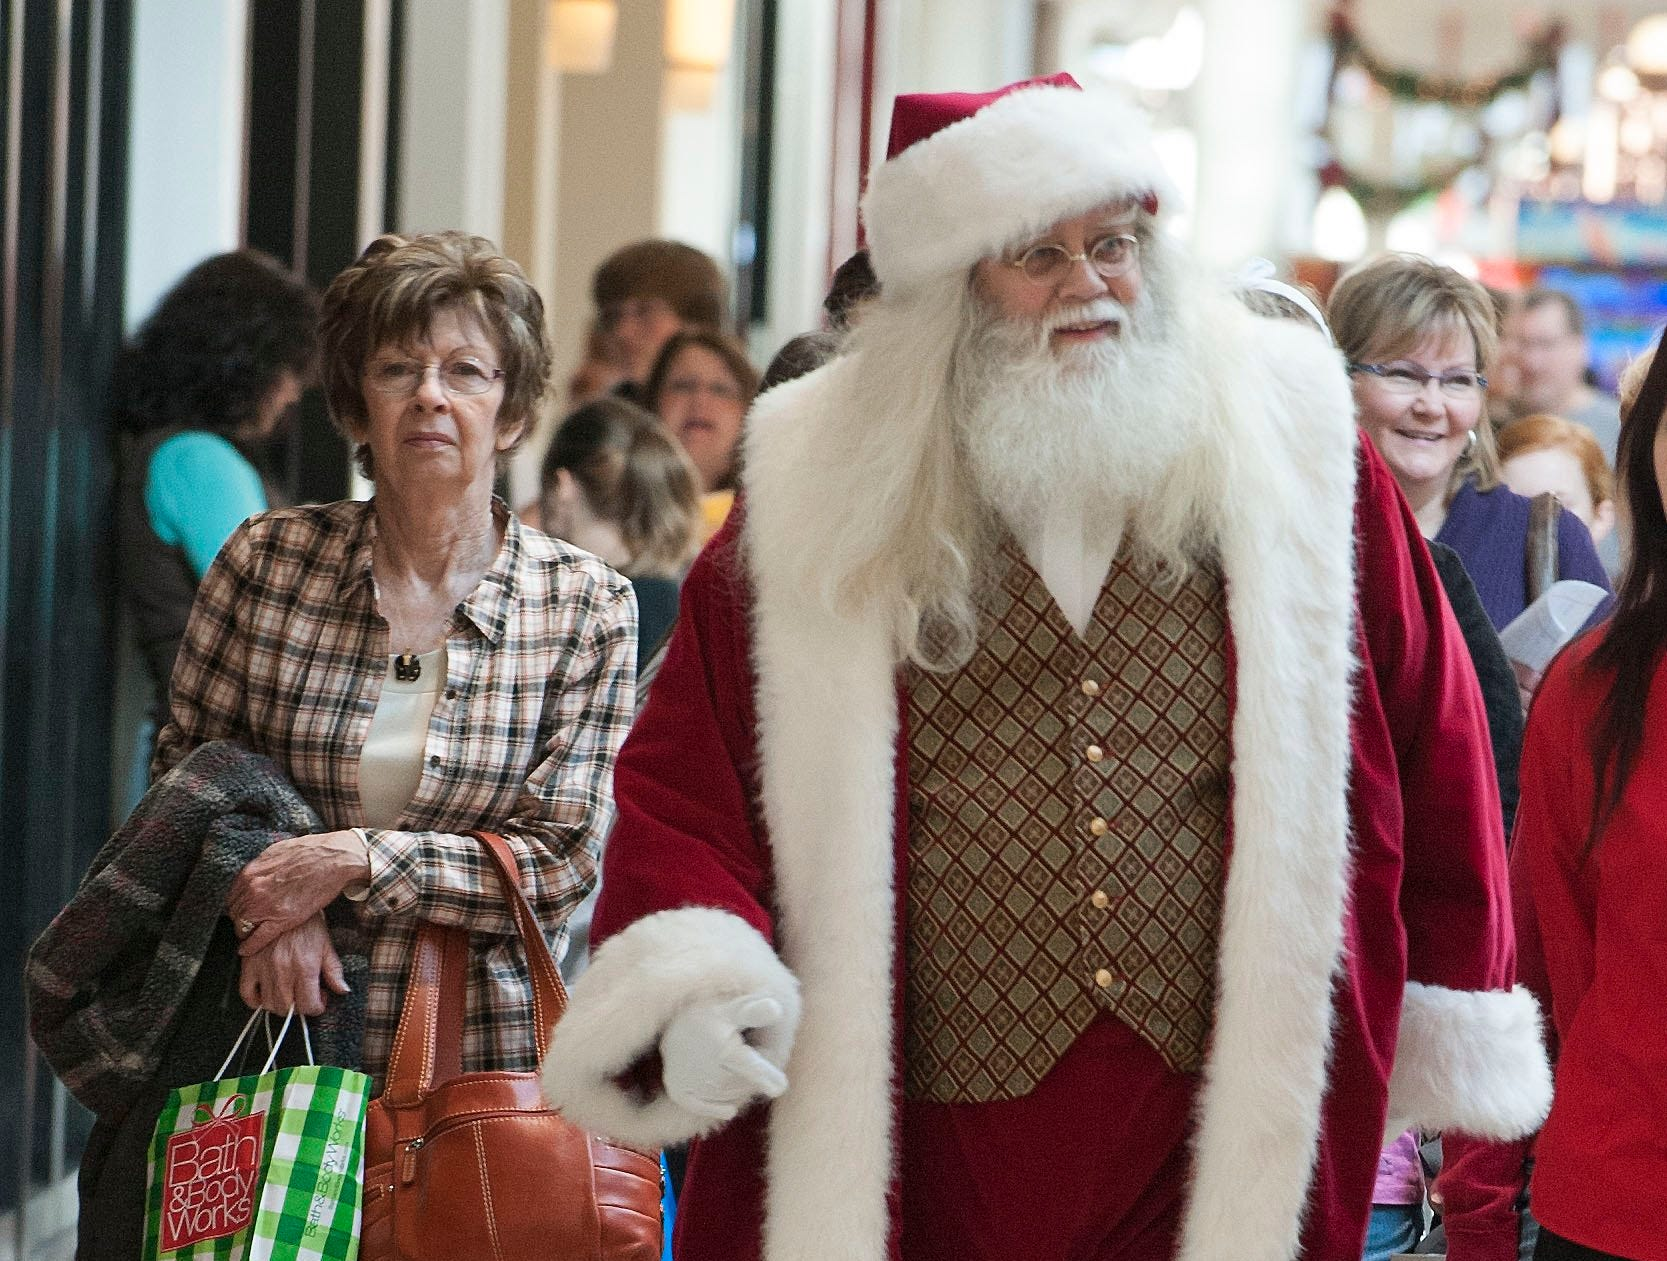 Santa Claus walks though West Town Mall  with Black Friday shoppers.  Black Friday is now in full swing with holiday shoppers filling the stores and malls in Knoxville.